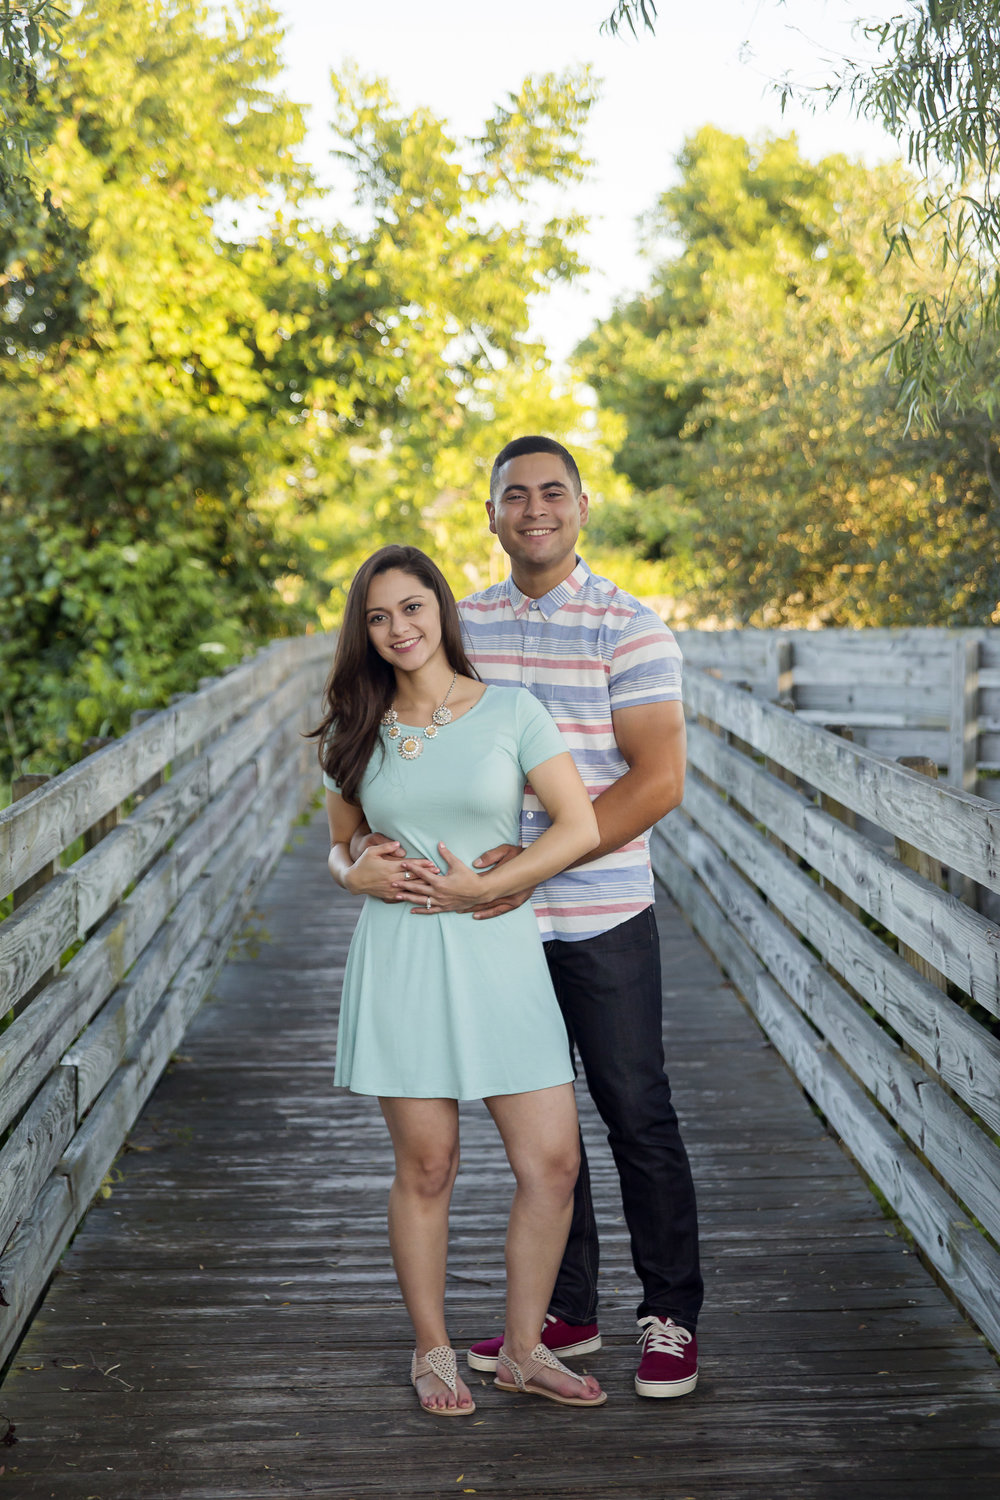 Manny and Neiba military homecoming wedding engagement session by Stephanie Axtell